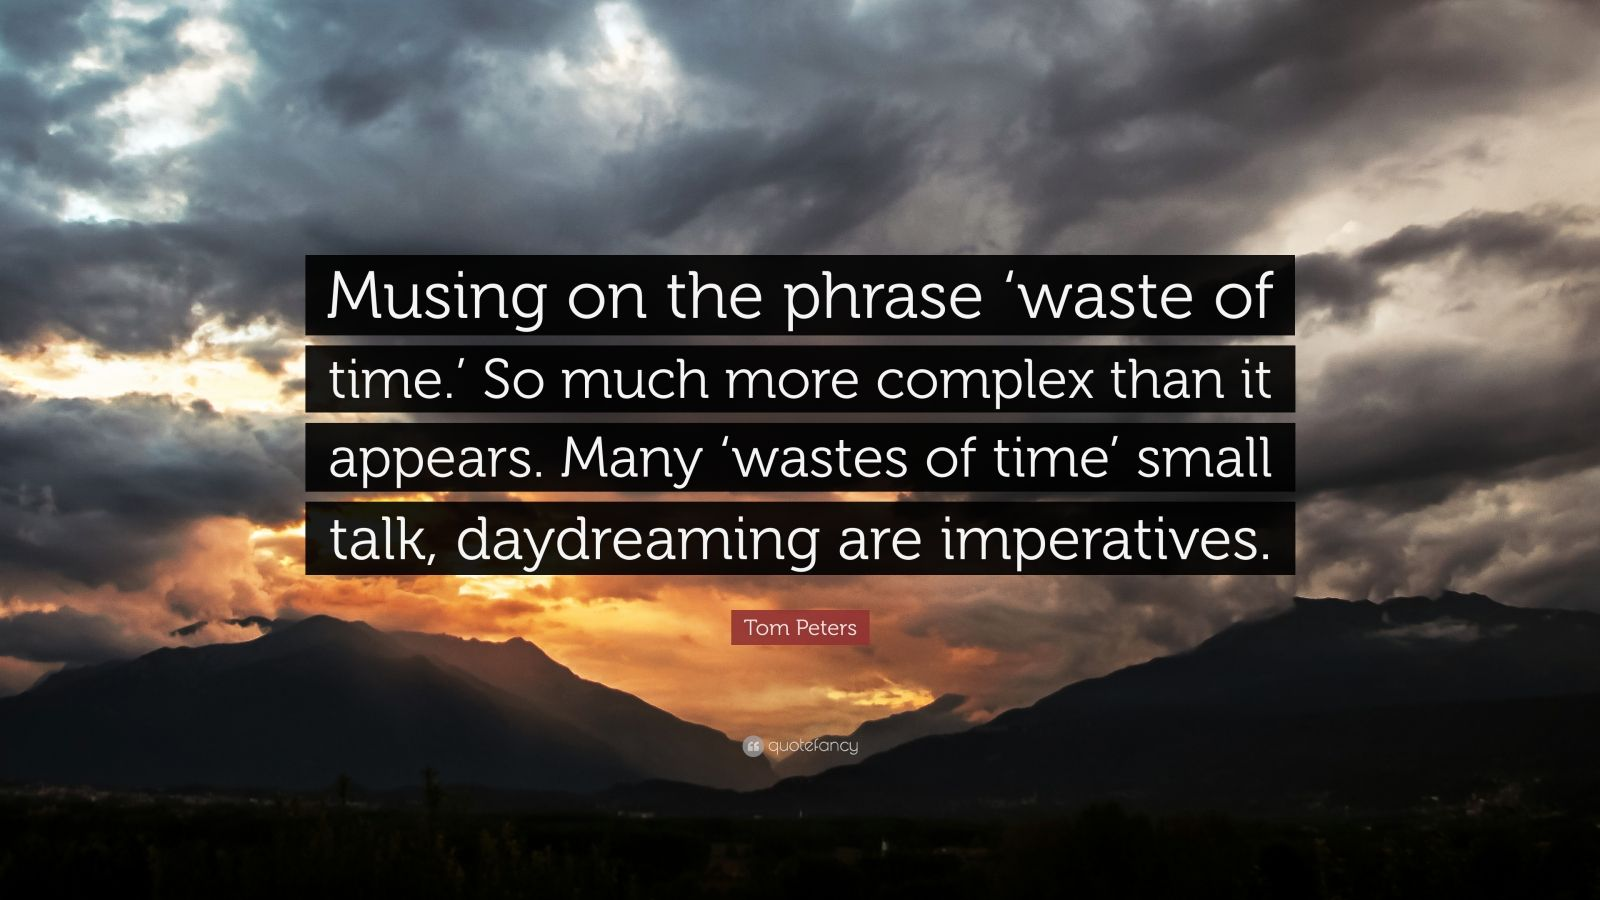 """Tom Peters Quote: """"Musing on the phrase 'waste of time.' So much more complex than it appears. Many 'wastes of time' small talk, daydreaming are imperatives."""""""